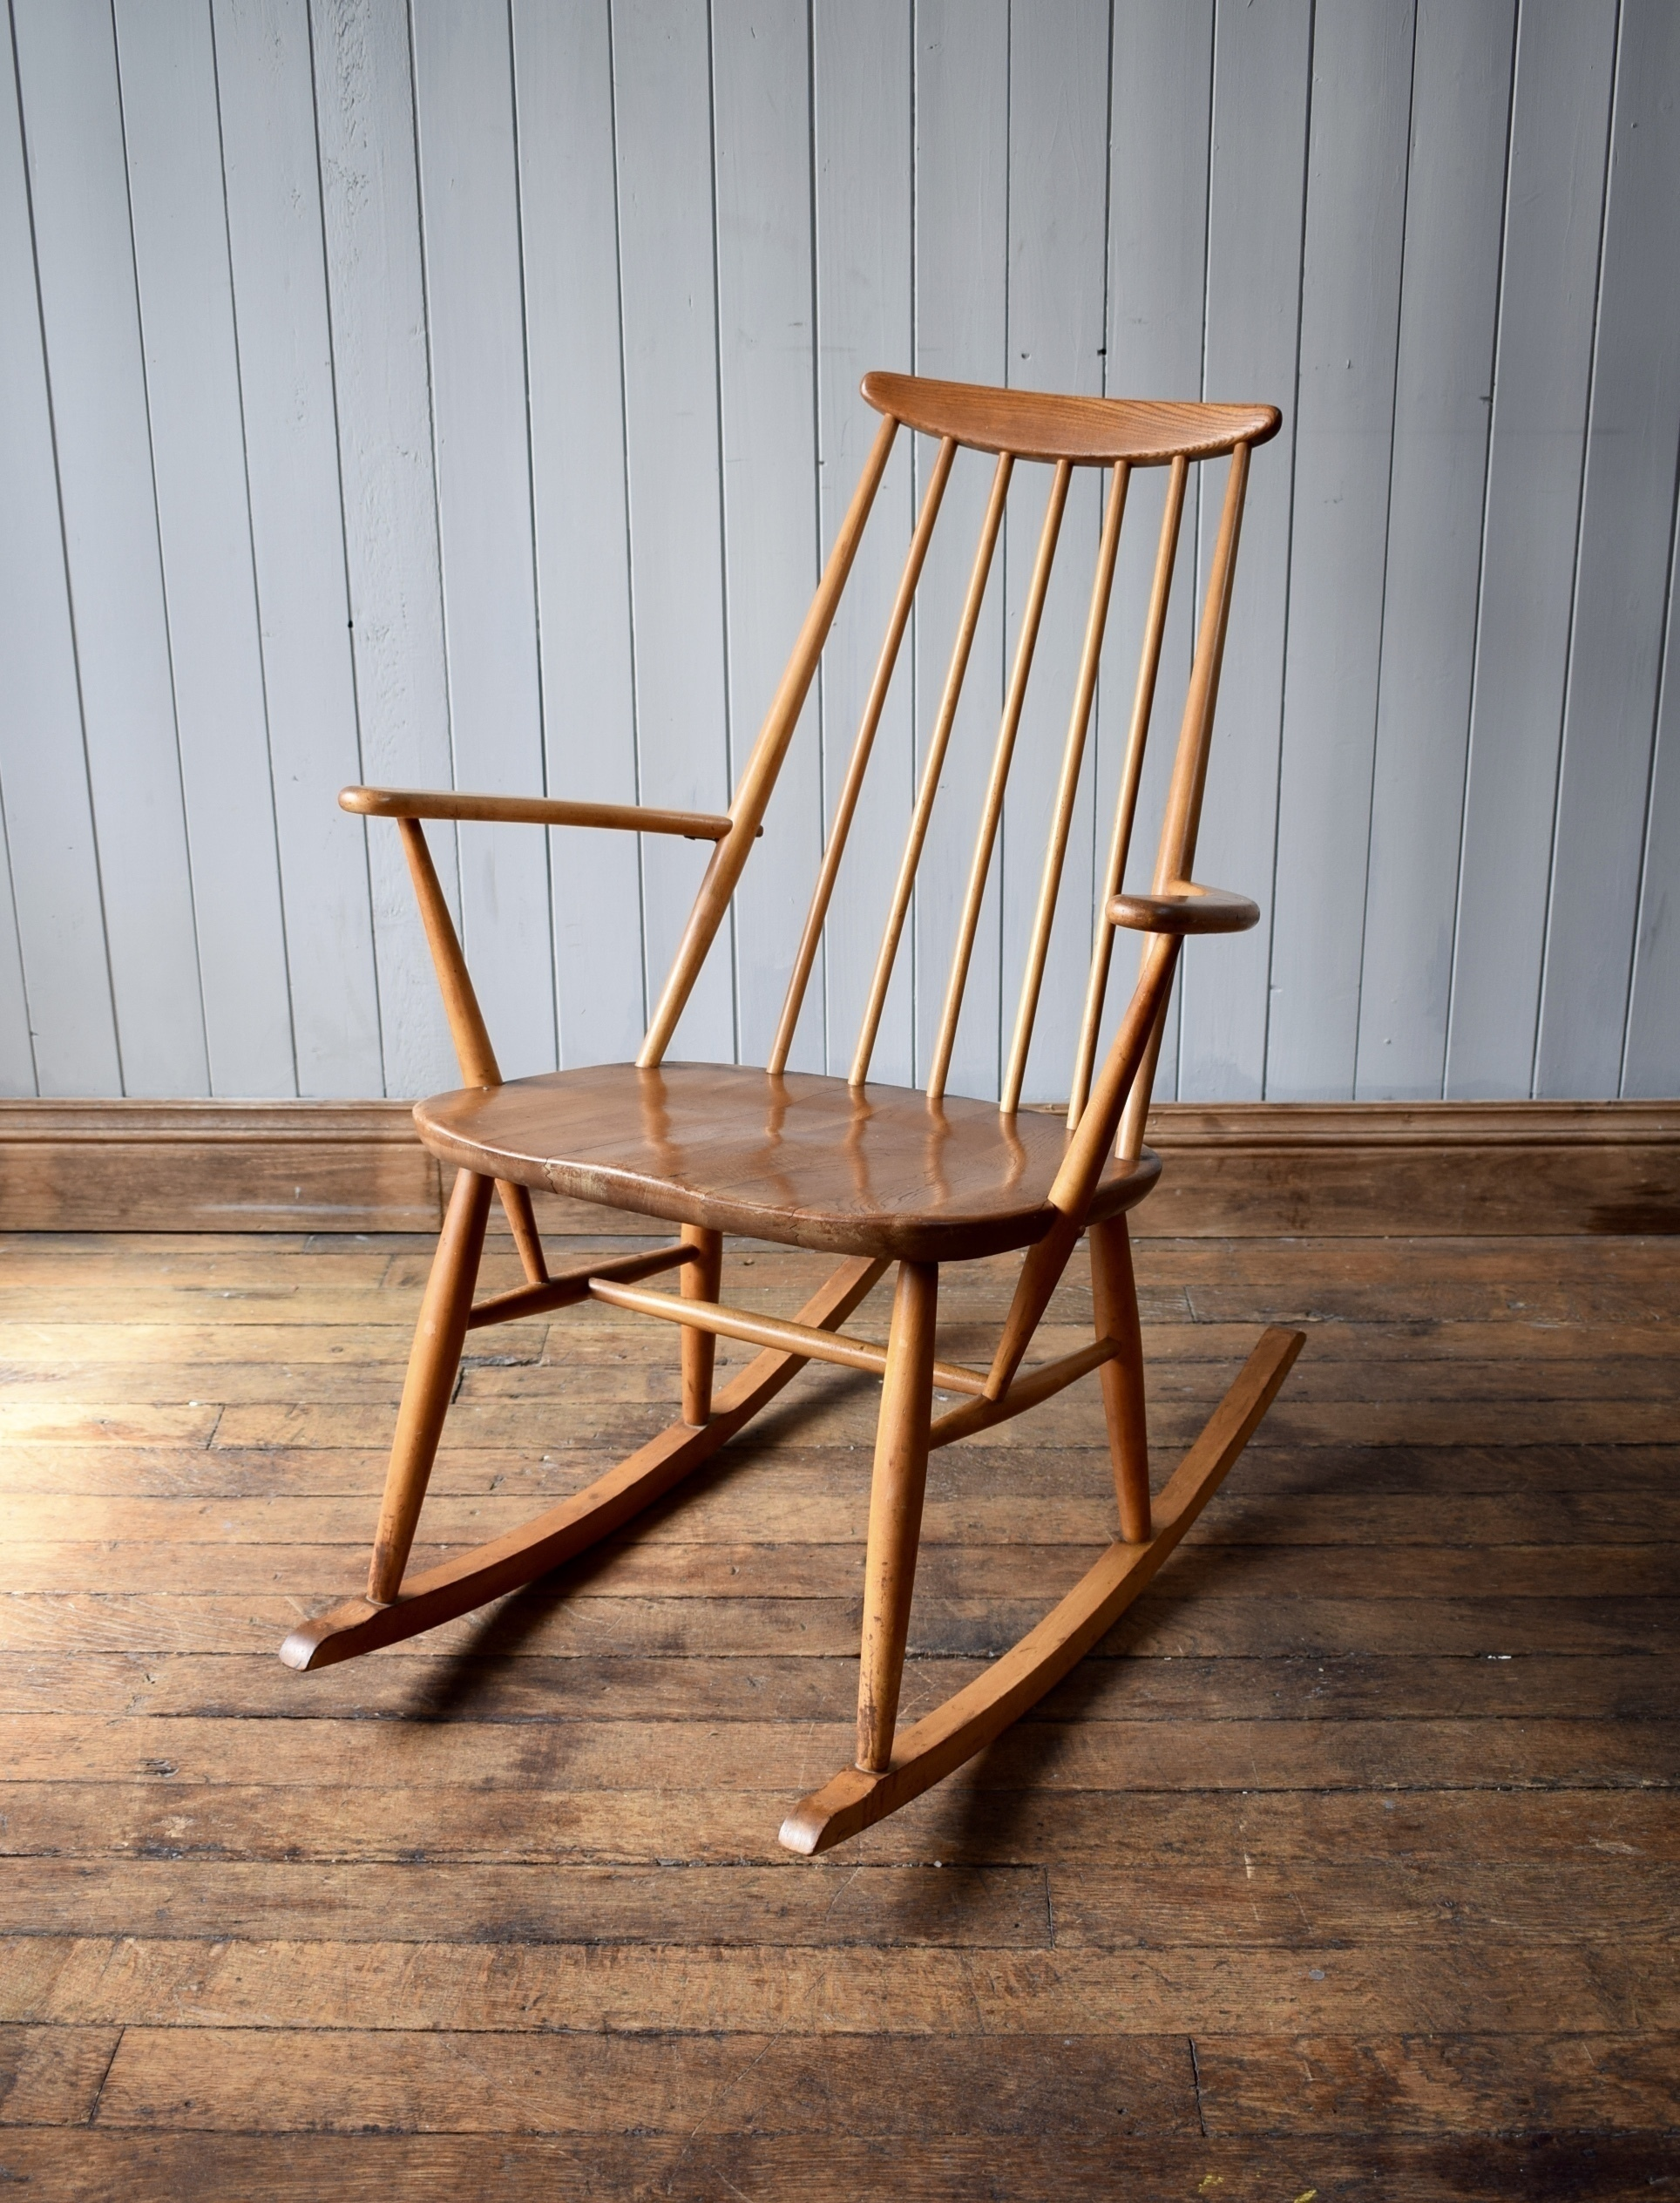 Admirable Intage 1960S Ercol Goldsmiths Fireside Rocking Chair Blonde Mid Century Inzonedesignstudio Interior Chair Design Inzonedesignstudiocom